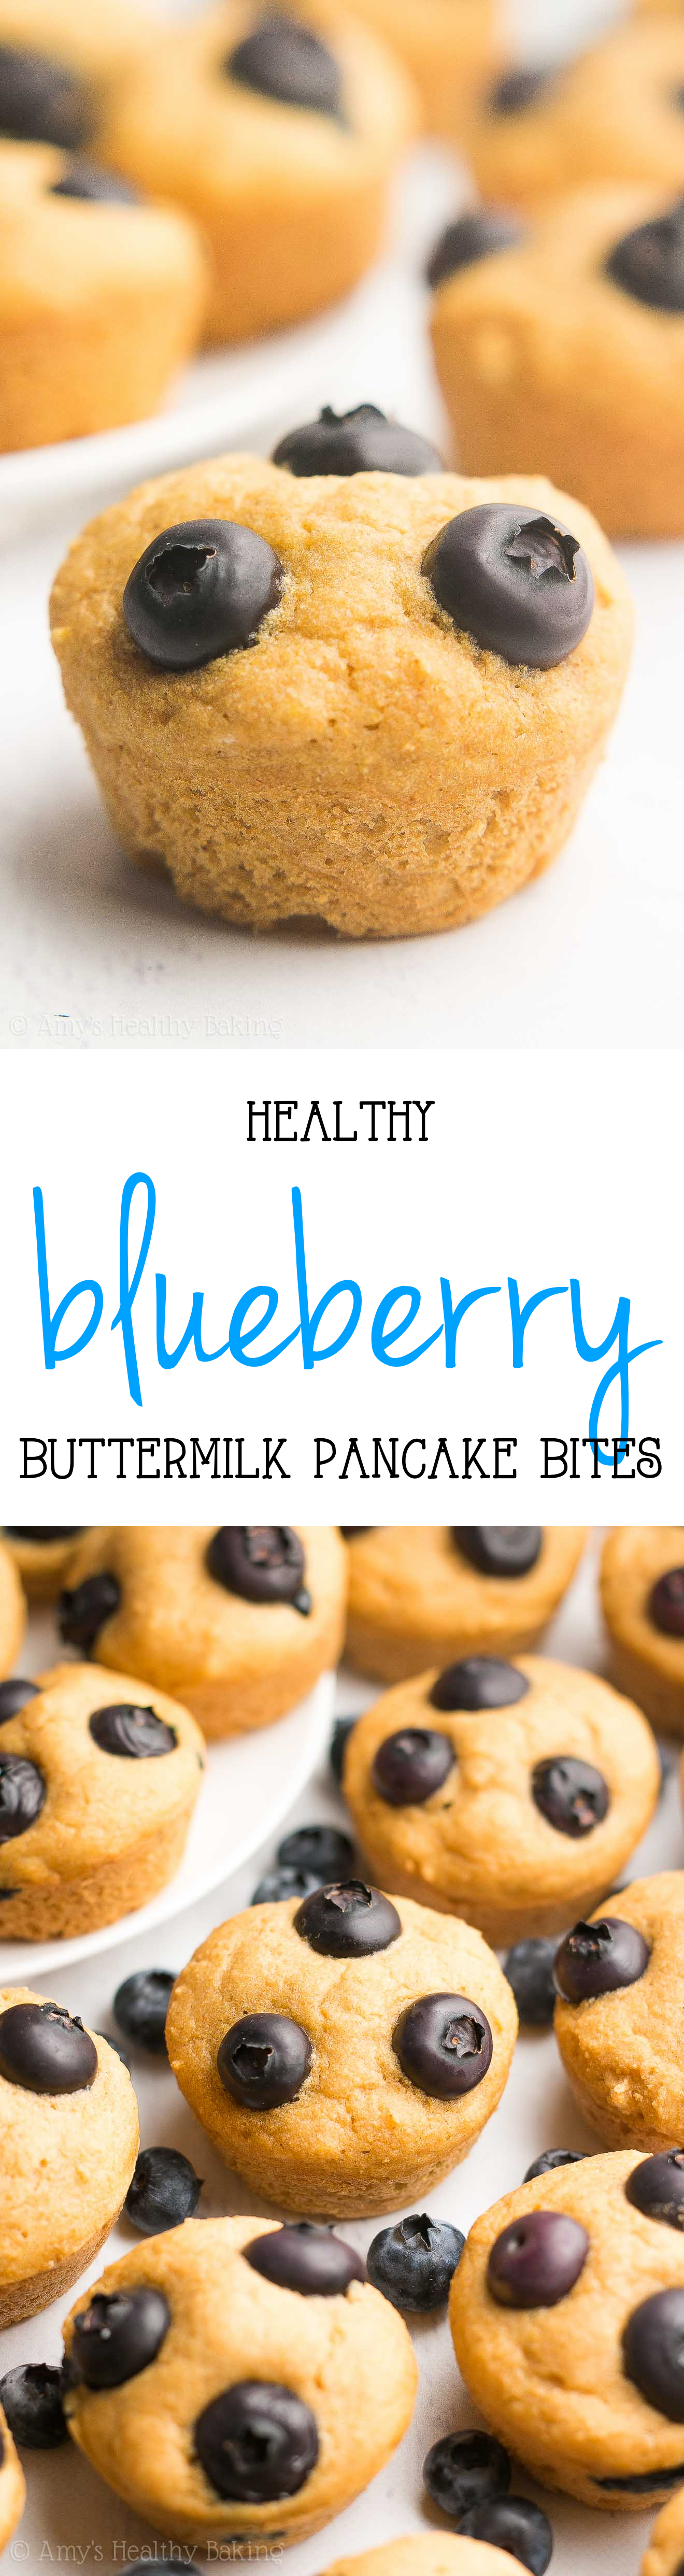 Healthy Blueberry Buttermilk Pancake Bites made in a mini muffin pan